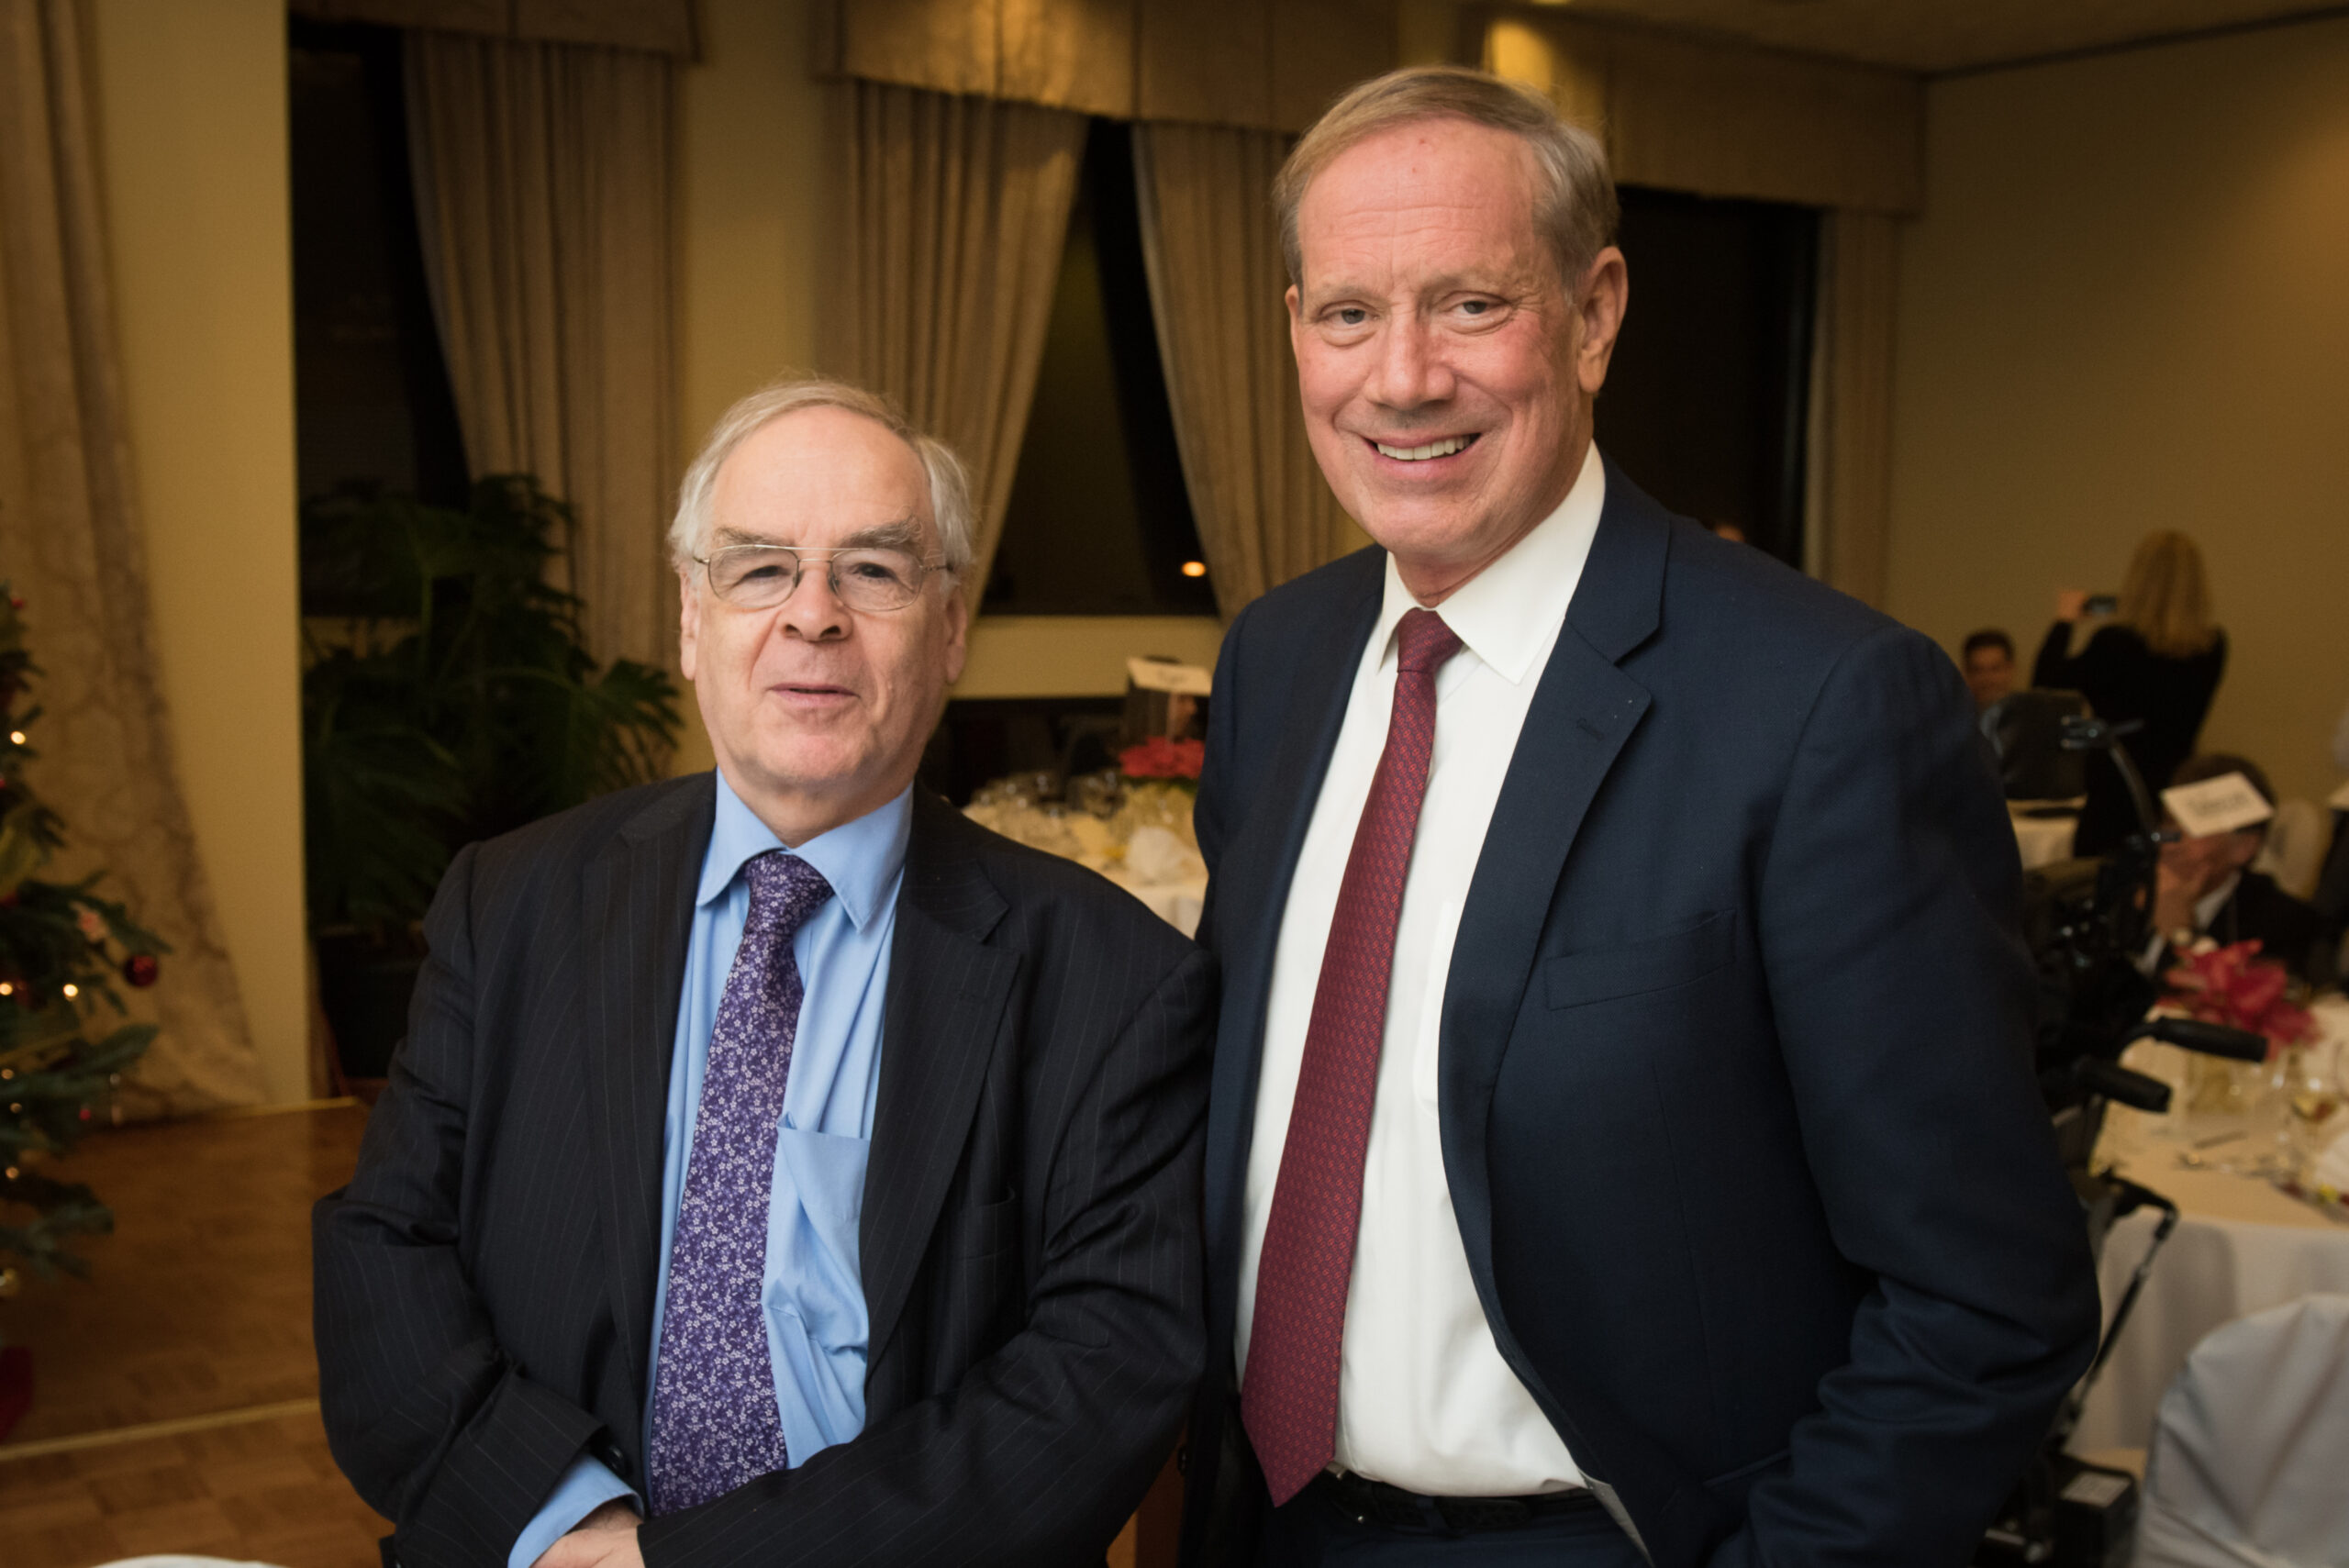 Dr. George Schöpflin and Governor George Pataki